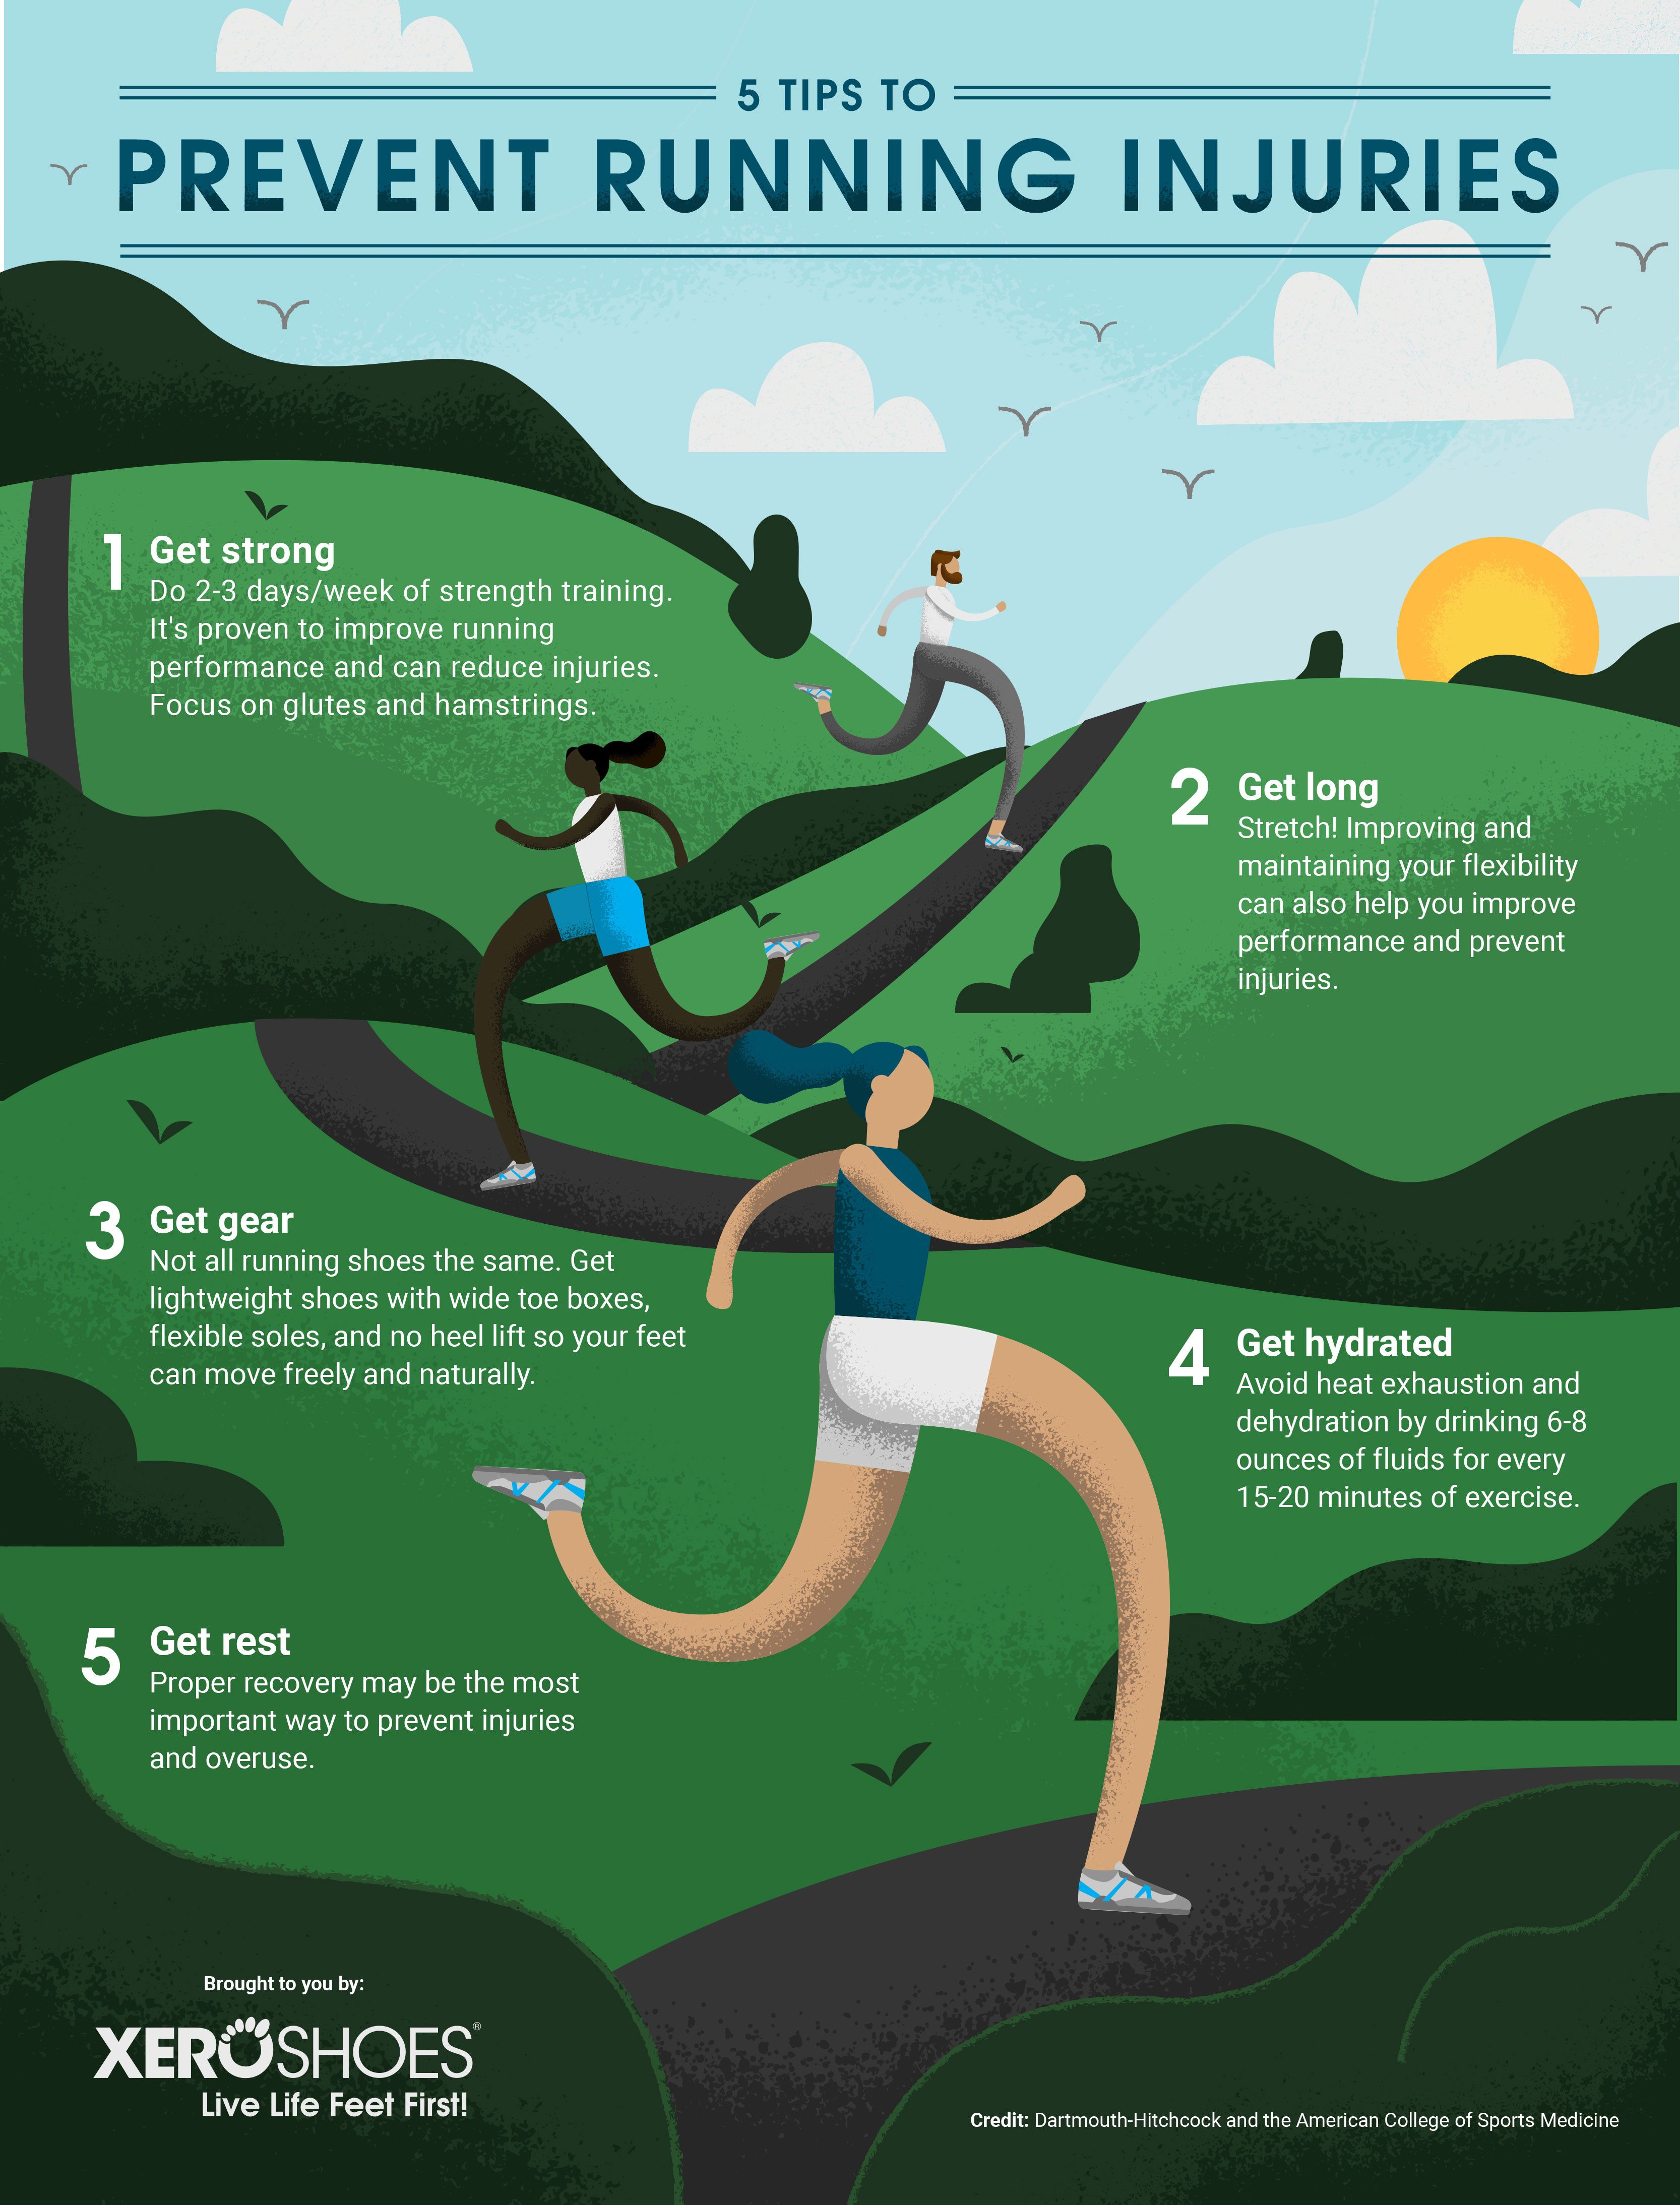 5 Tips To Help Prevent Running Injuries Xero Shoes Running Injuries Running For Beginners Running Tips